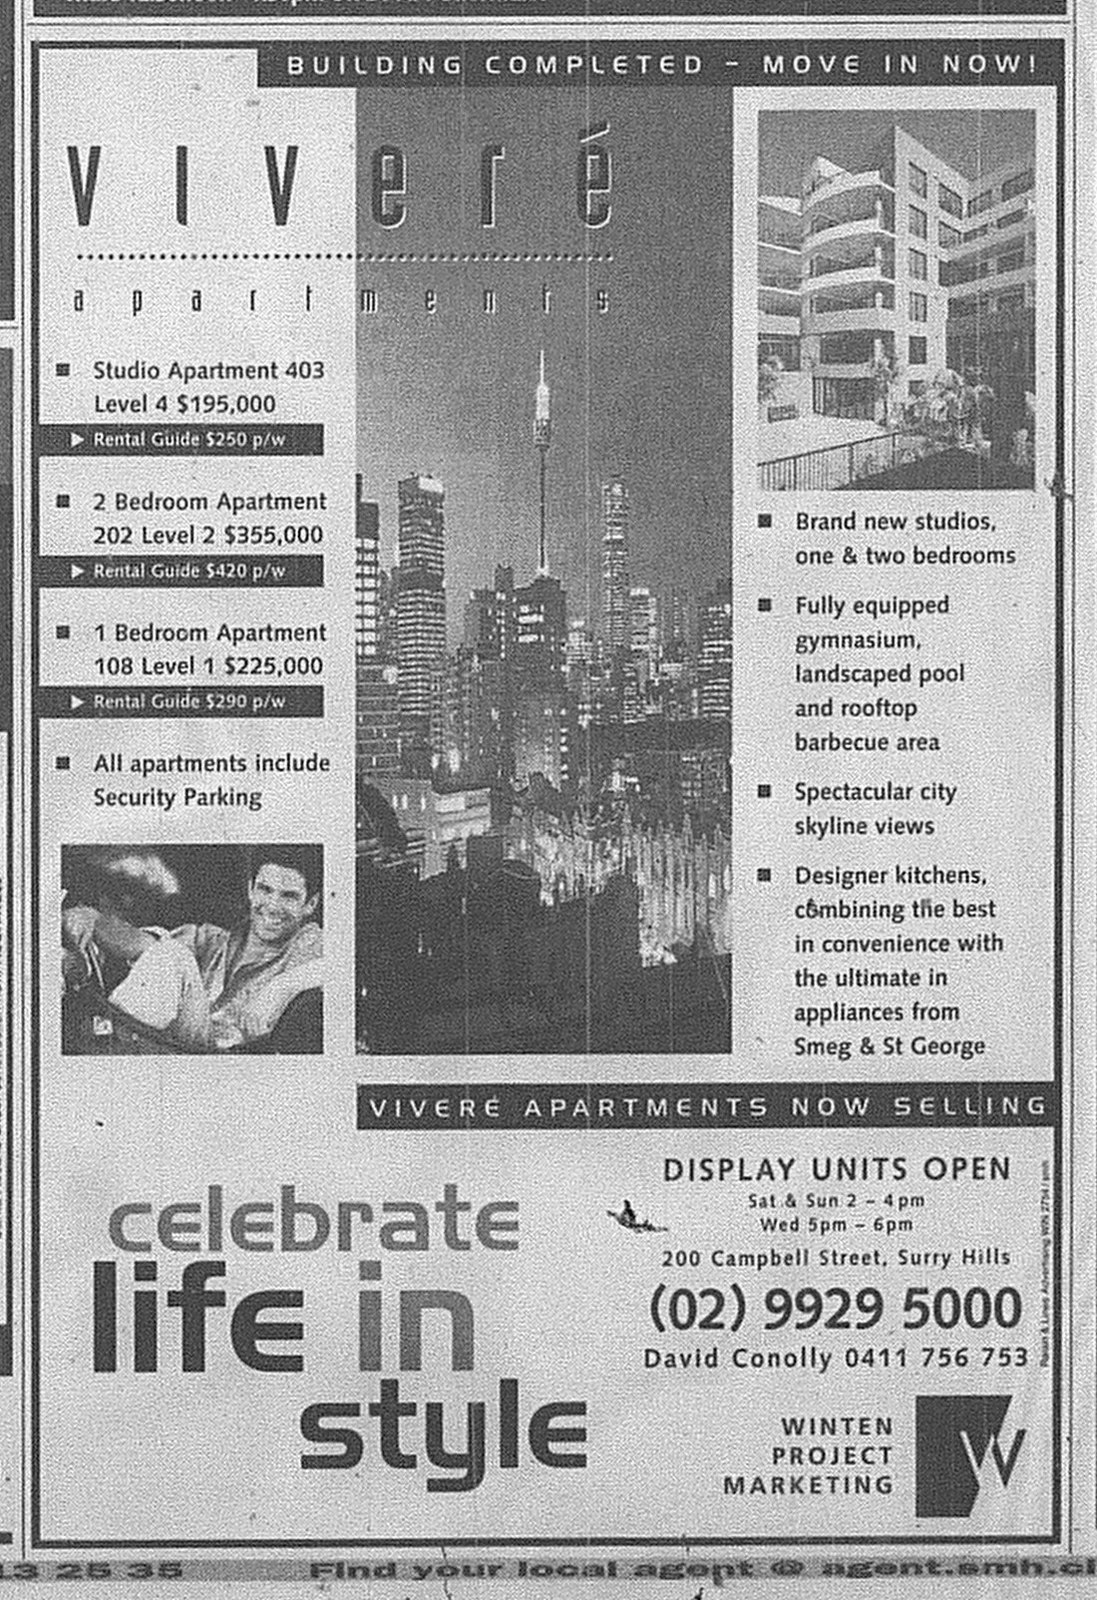 Vivere Apartments Surry Hills SMH May 2 1998 22RE